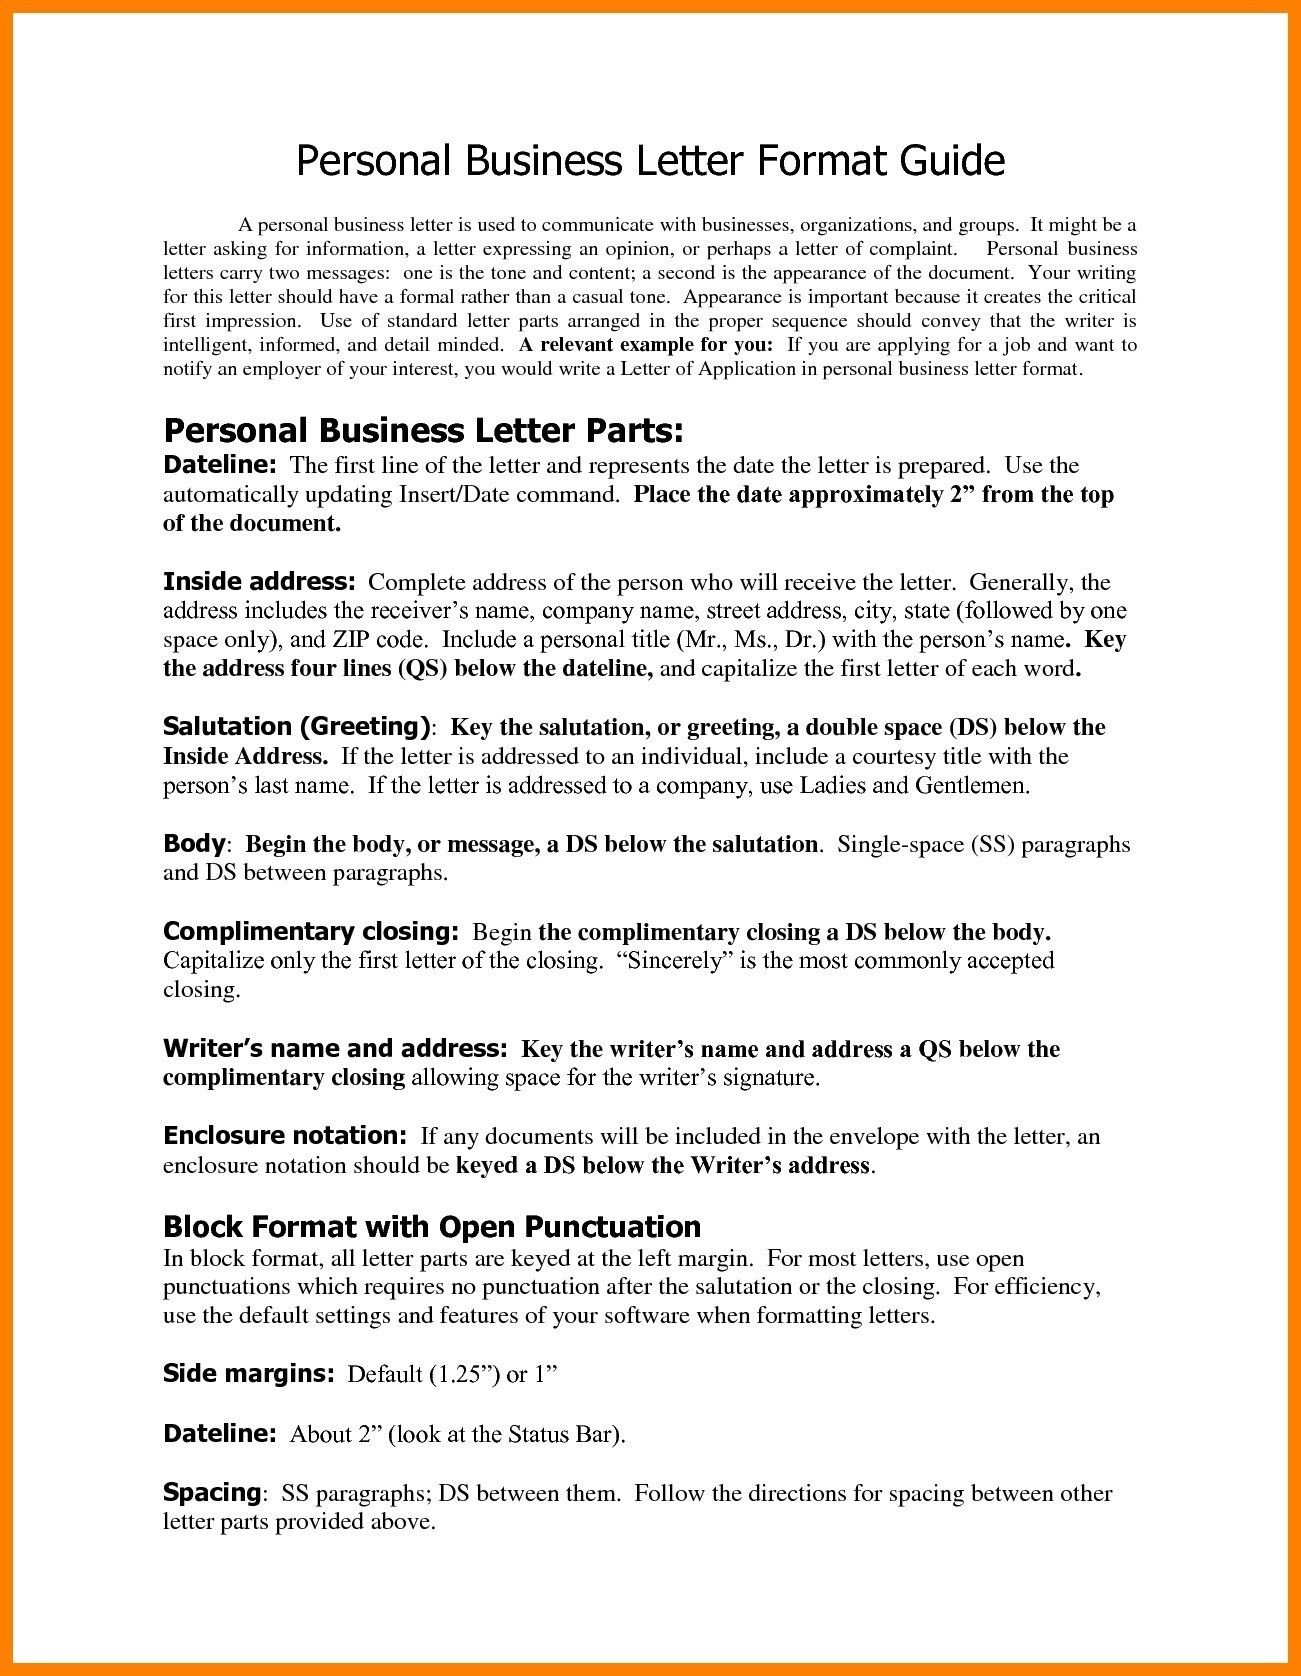 Valid Business Letter Format And Margins